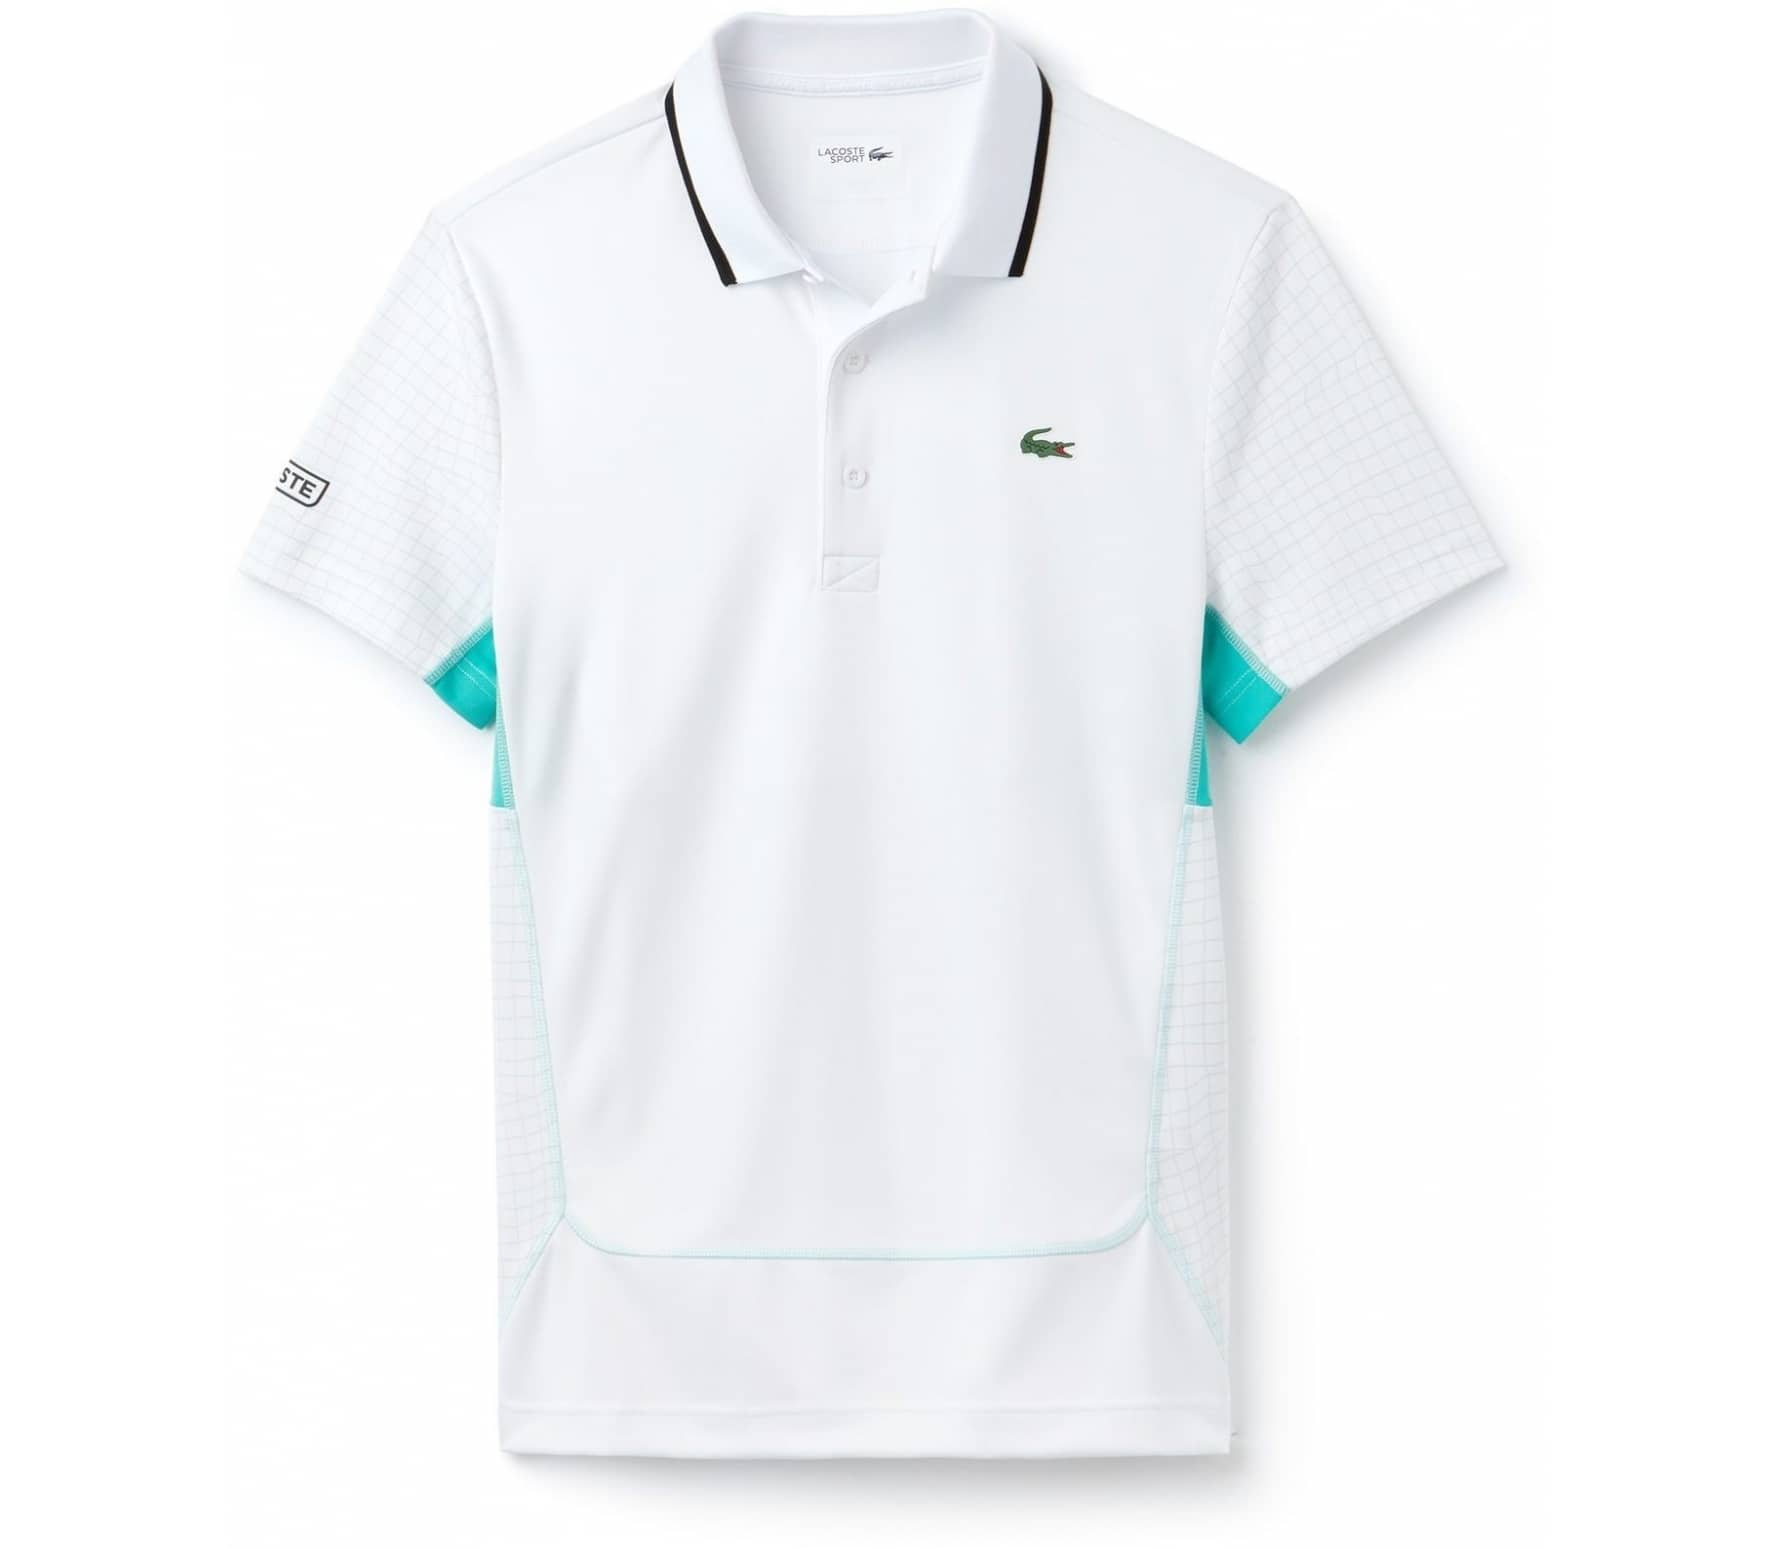 Lacoste - Sleeved Ribbed Collar men s tennis polo top (white green ... 7c45f9375ec